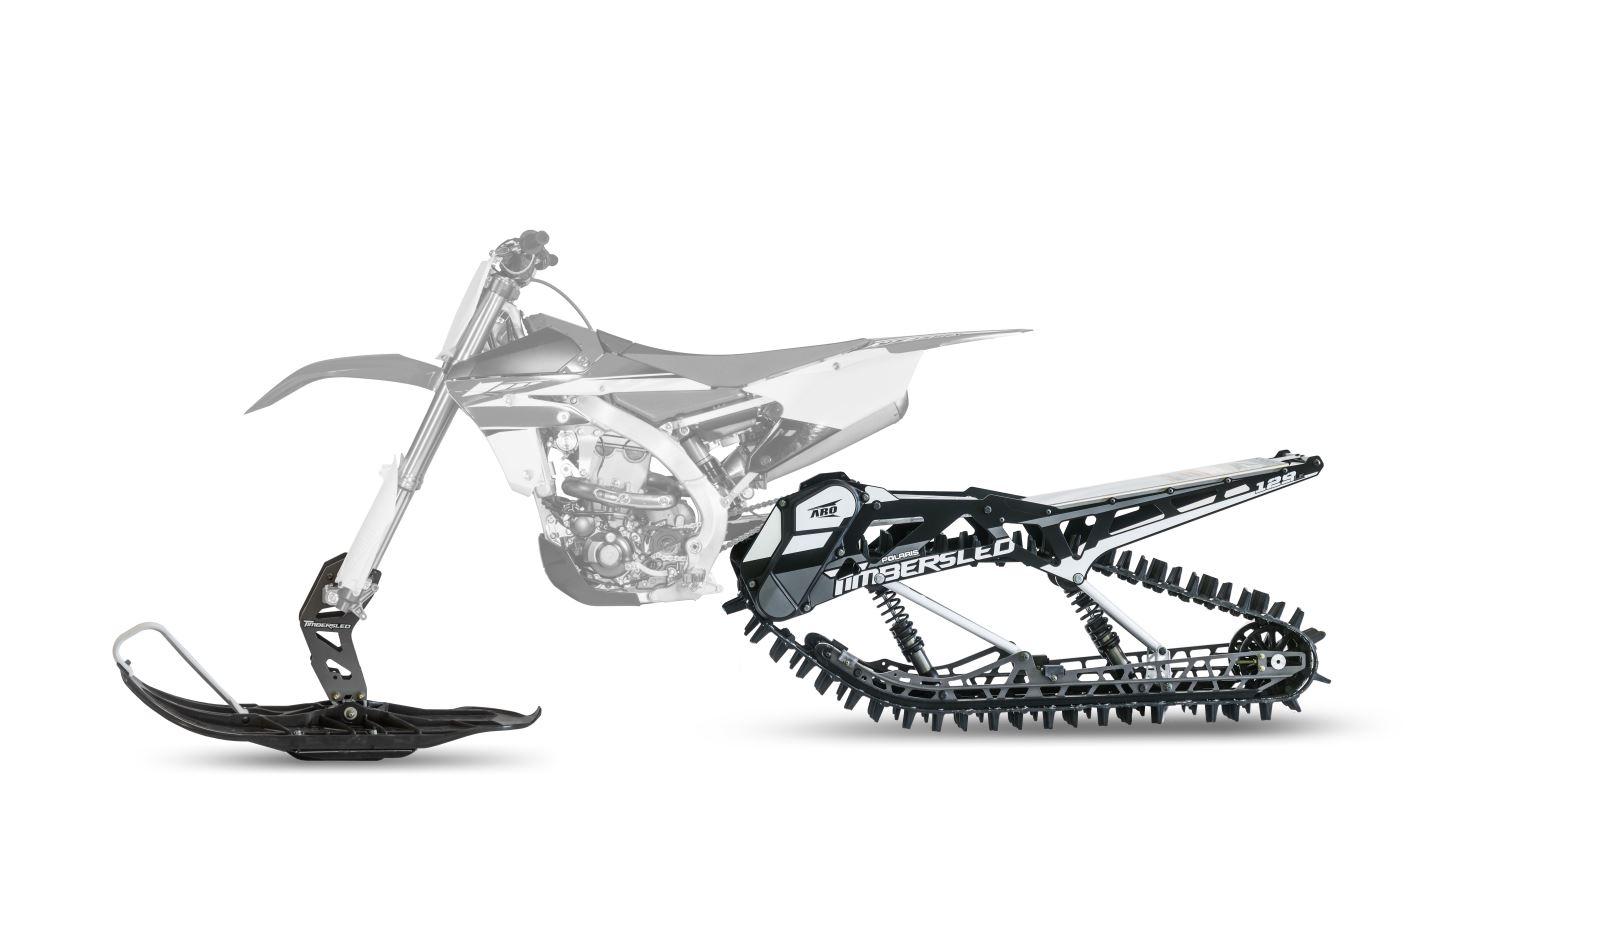 Timbersled Aro Snow Bike Lineup Expands With Addition Of New Timbersled Aro 129 Le